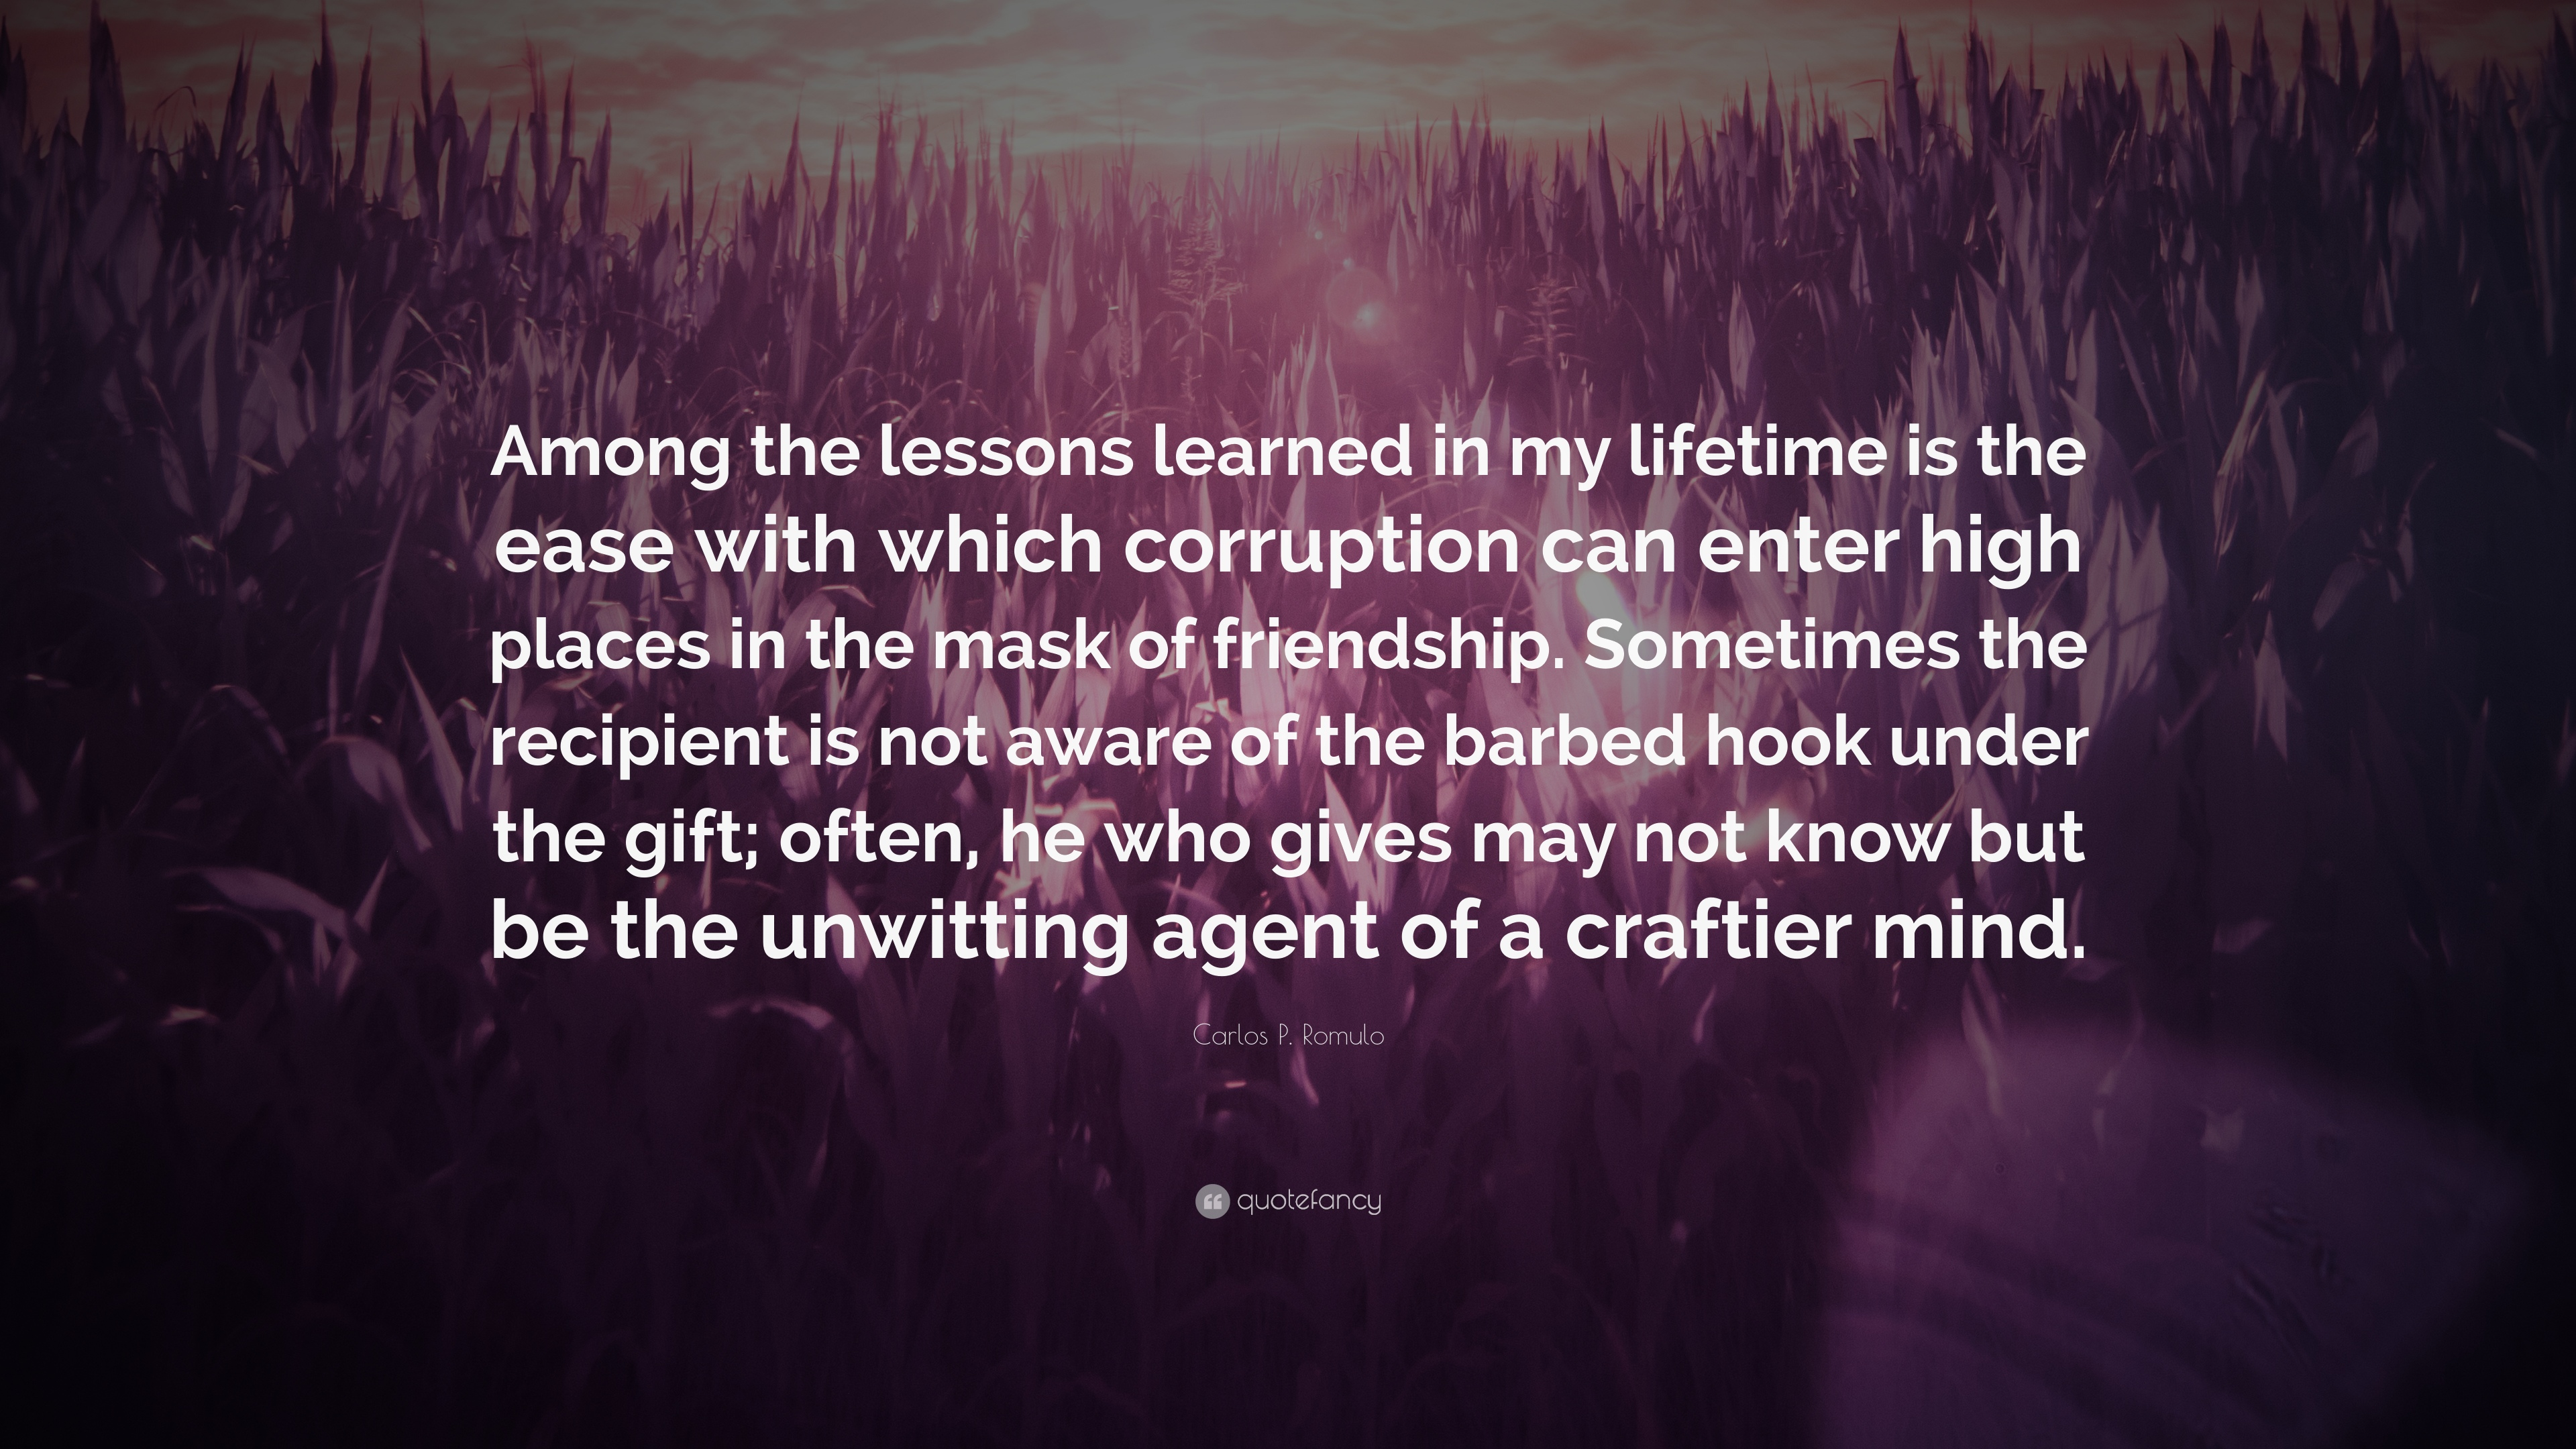 Carlos P Romulo Quote Among The Lessons Learned In My Lifetime Is